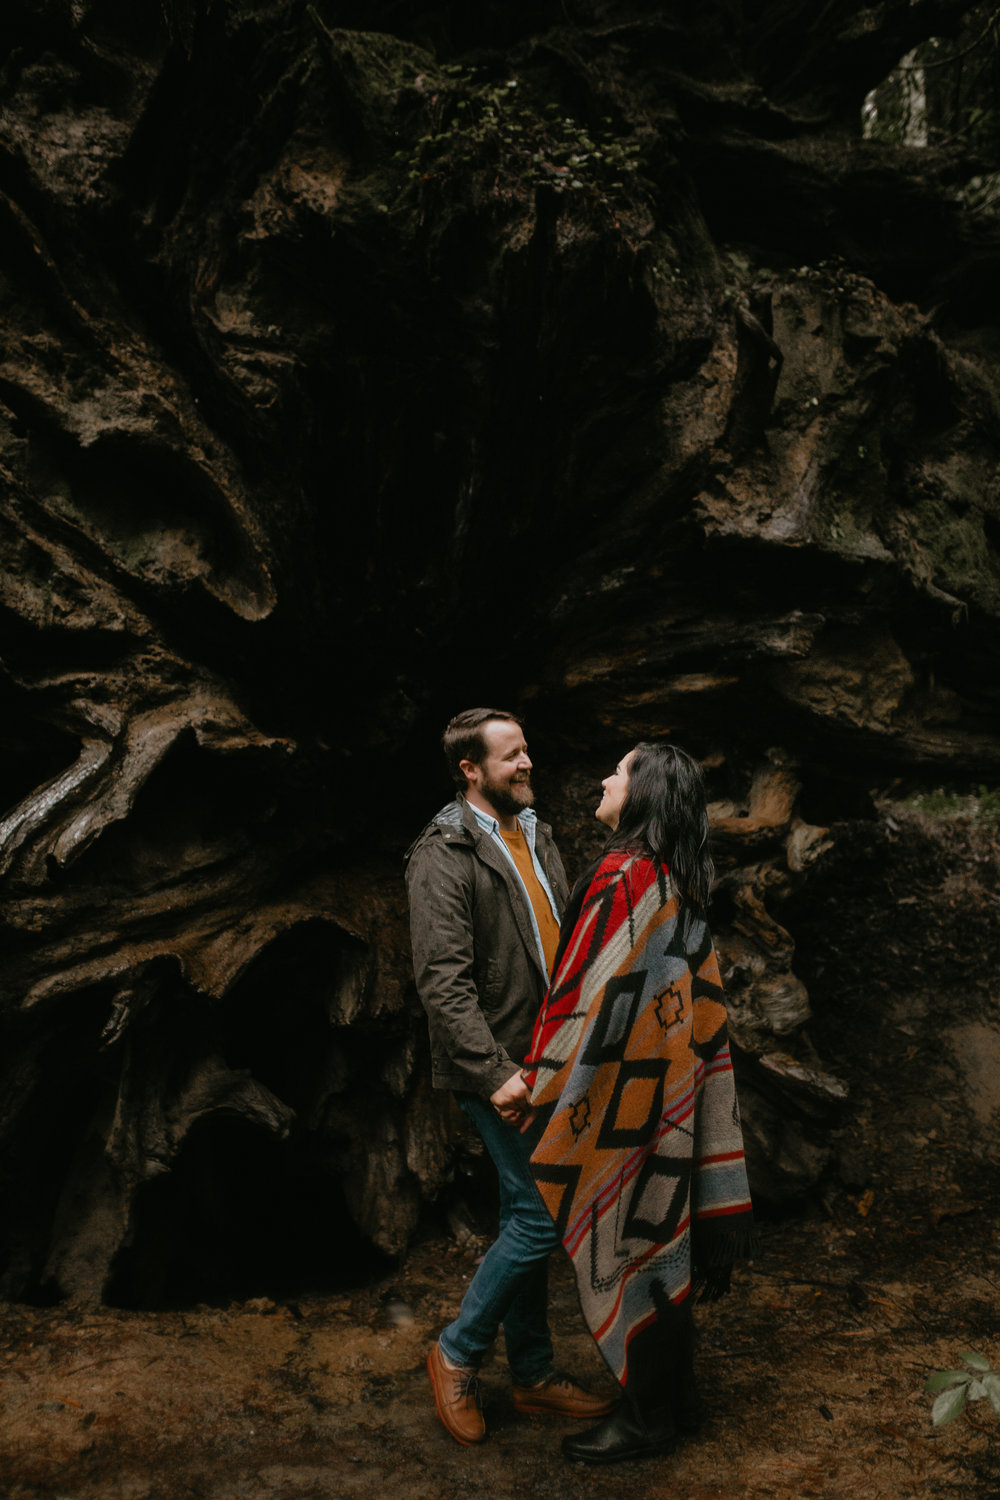 nicole-daacke-photography-redwoods-national-park-forest-rainy-foggy-adventure-engagement-session-humboldt-county-old-growth-redwood-tree-elopement-intimate-wedding-photographer-25.jpg